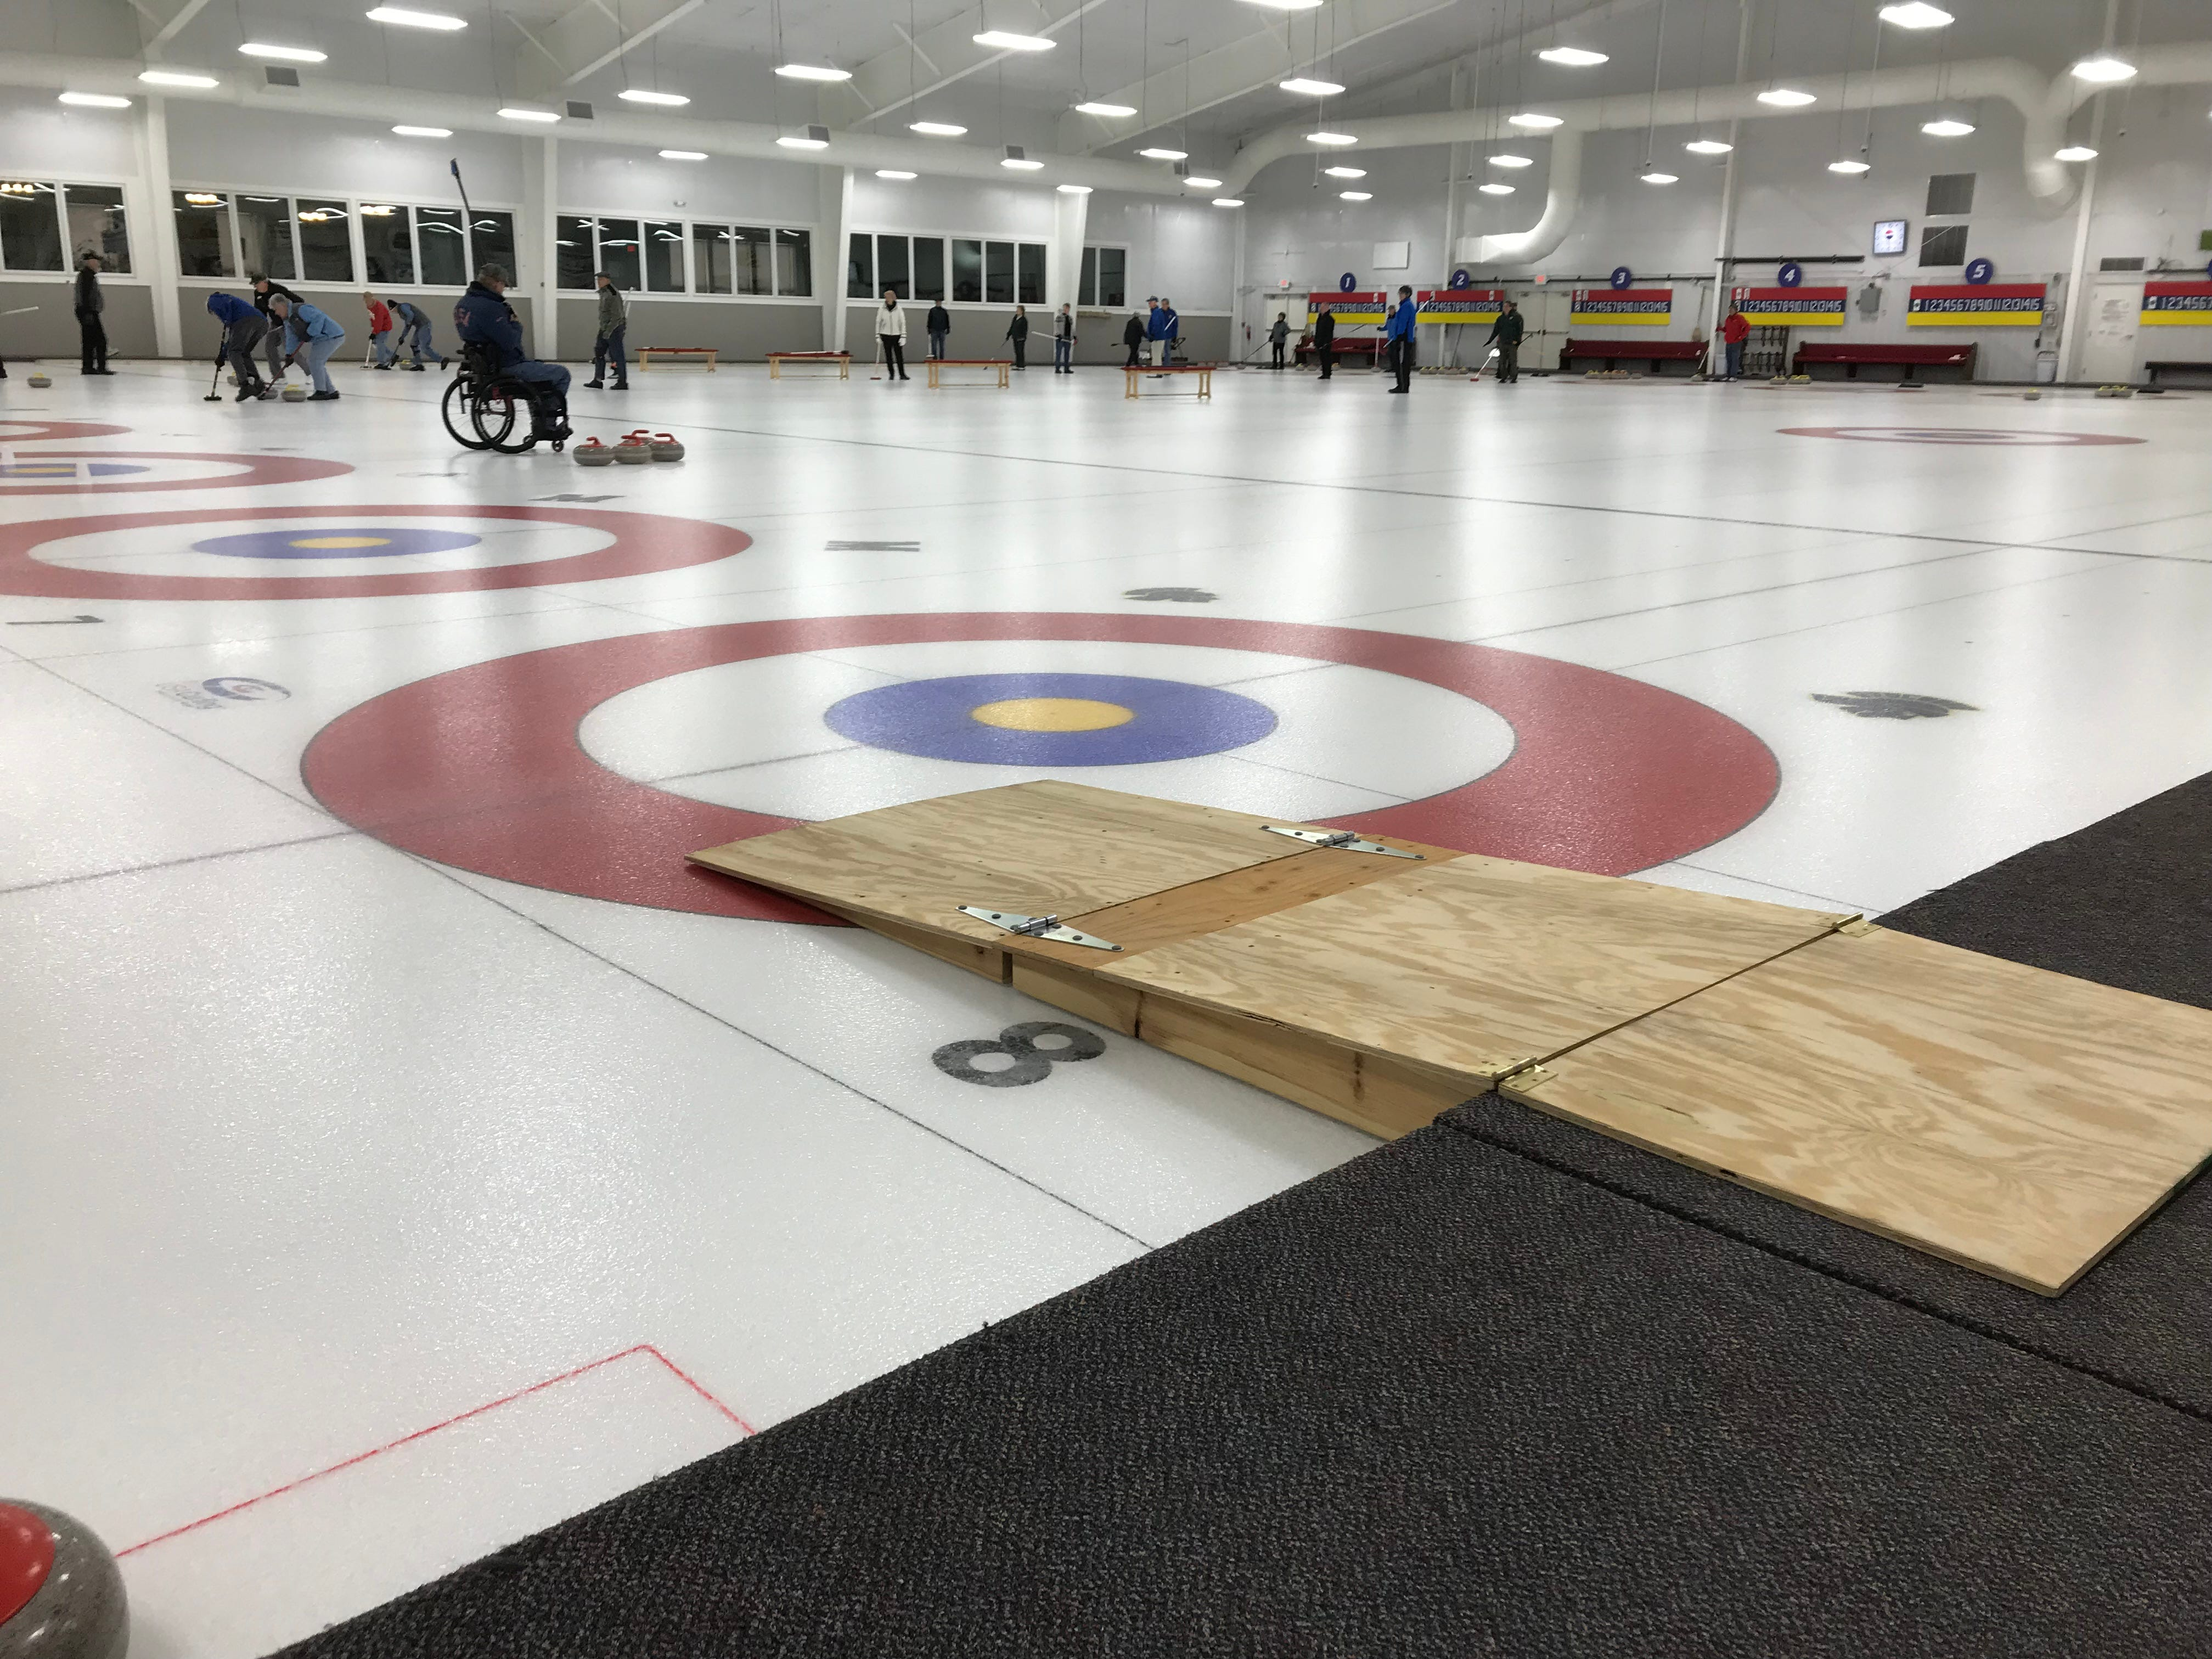 The Wausau Curling Center, completed in 2012, was designed to Olympic specifications. It also was designed to be accessible for athletes who use wheelchairs.